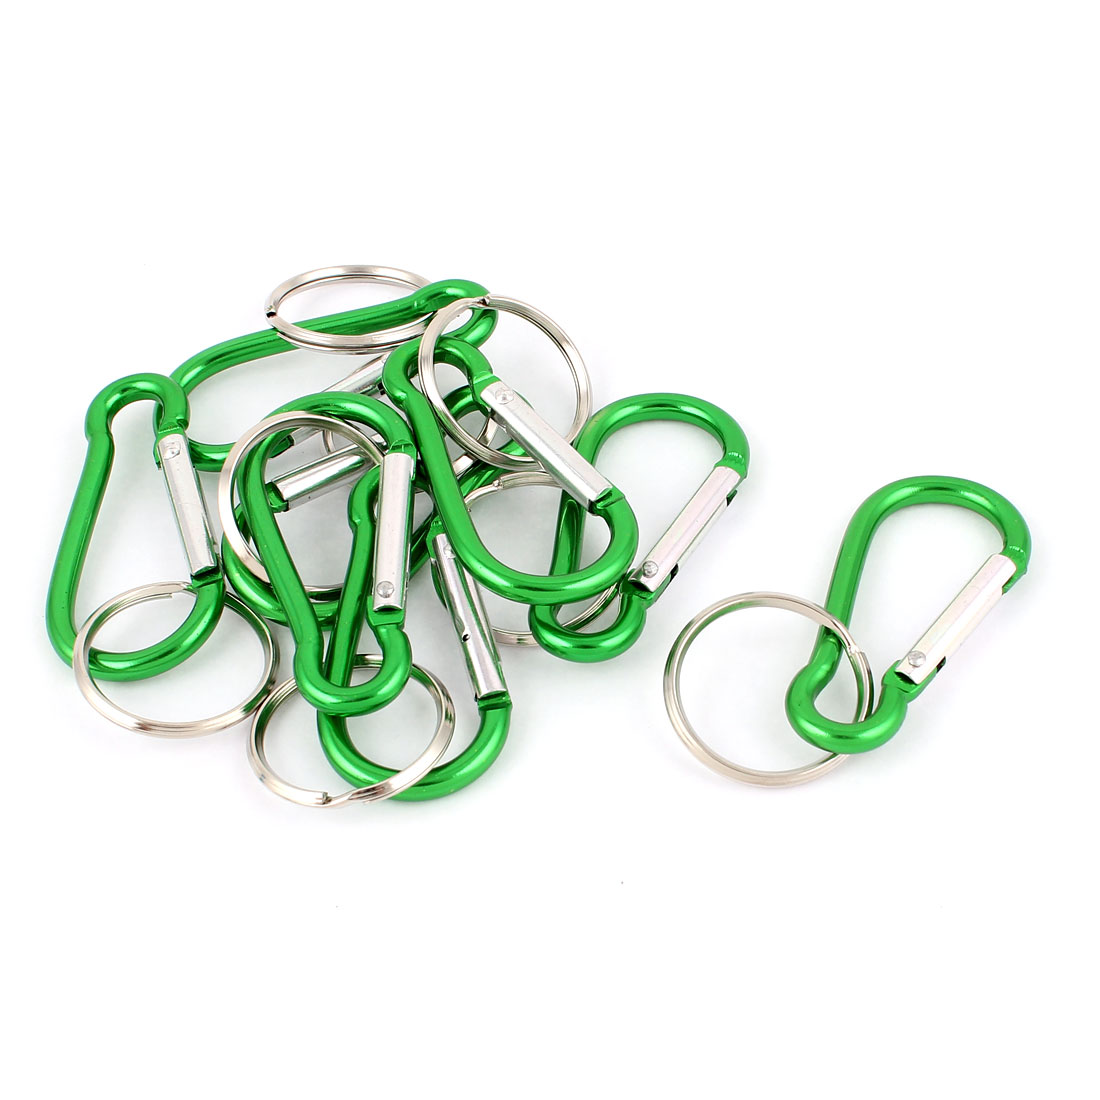 Cycling Metal Calabash Shaped Spring Loaded Gate Clip Carabiner Hook Key Chain Split Ring 8pcs Green